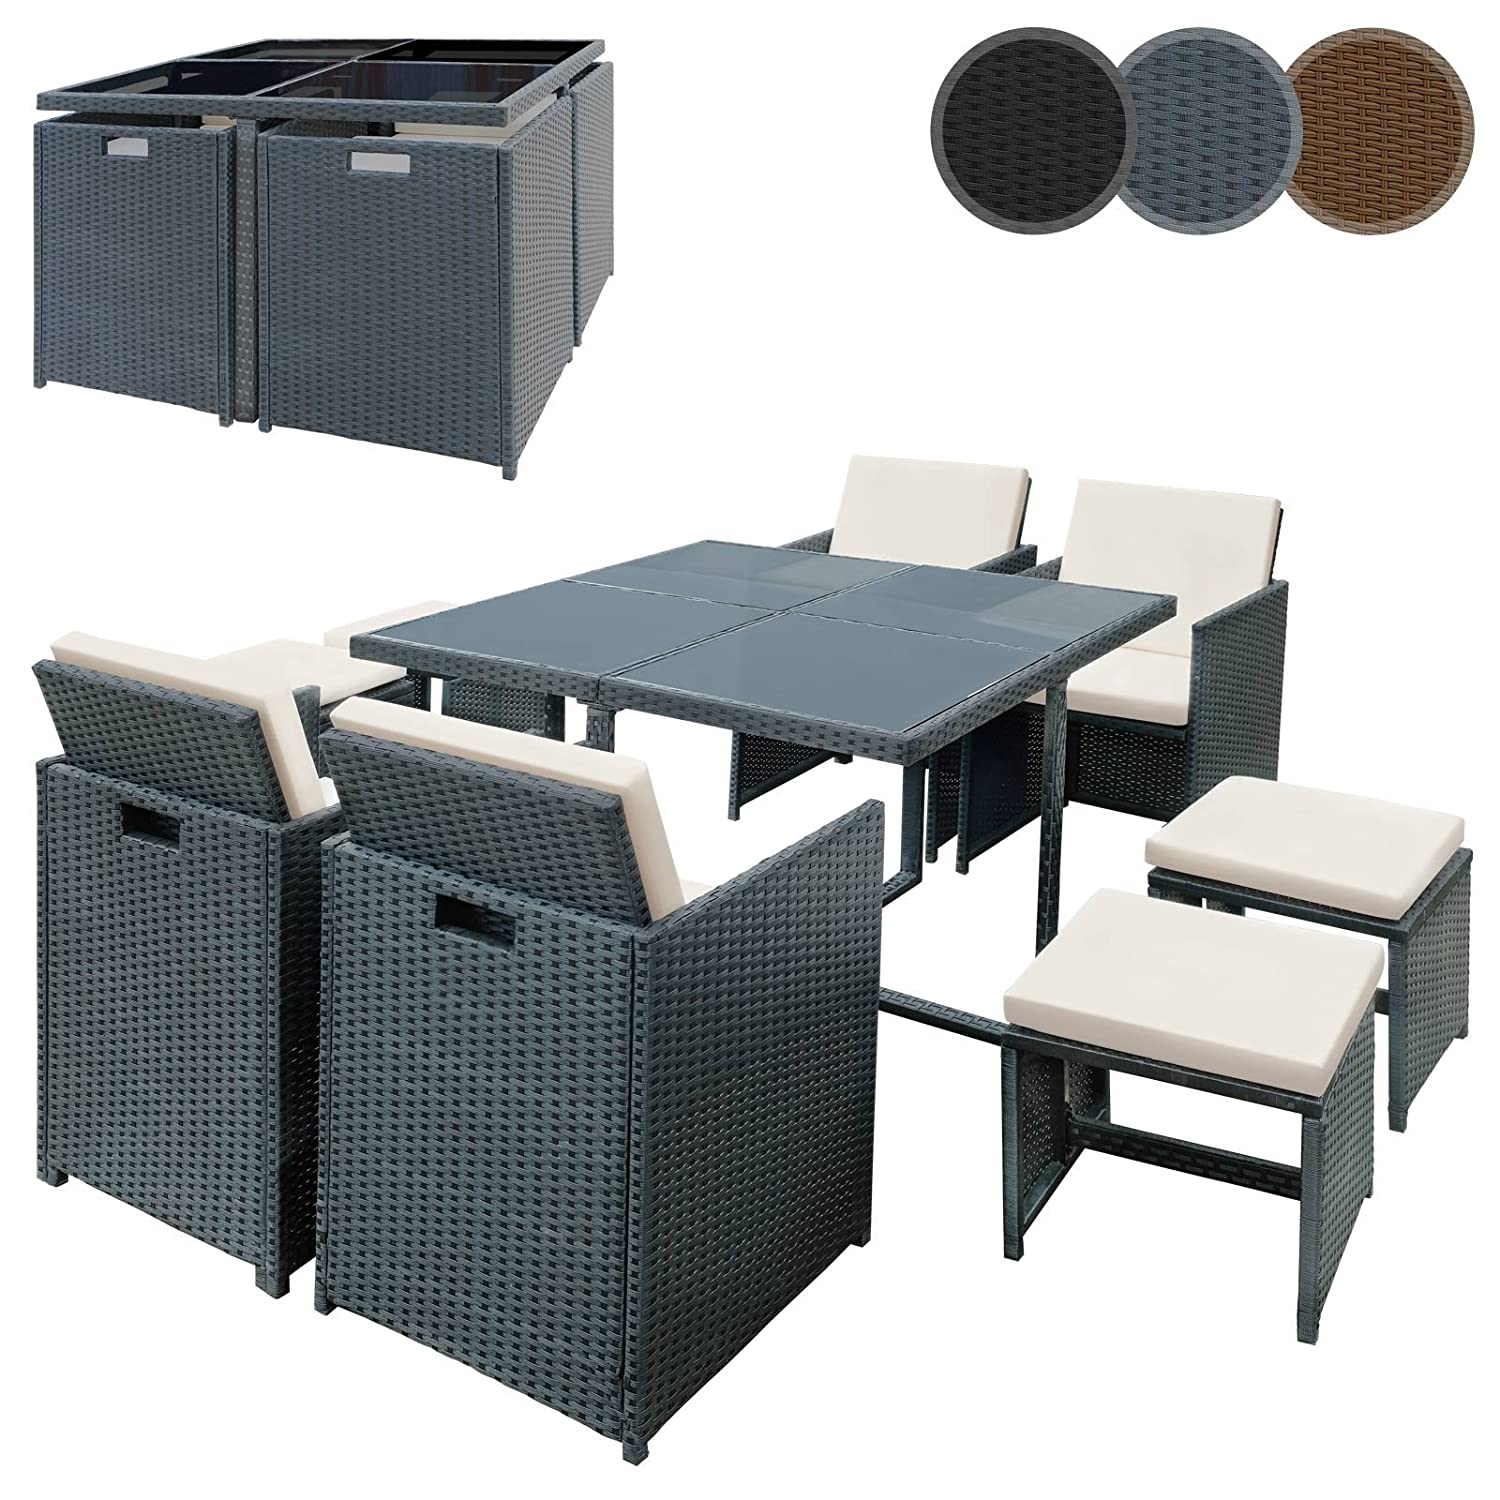 miadomodo polyrattan sitzgruppe sitzgarnitur gartenm bel 9. Black Bedroom Furniture Sets. Home Design Ideas